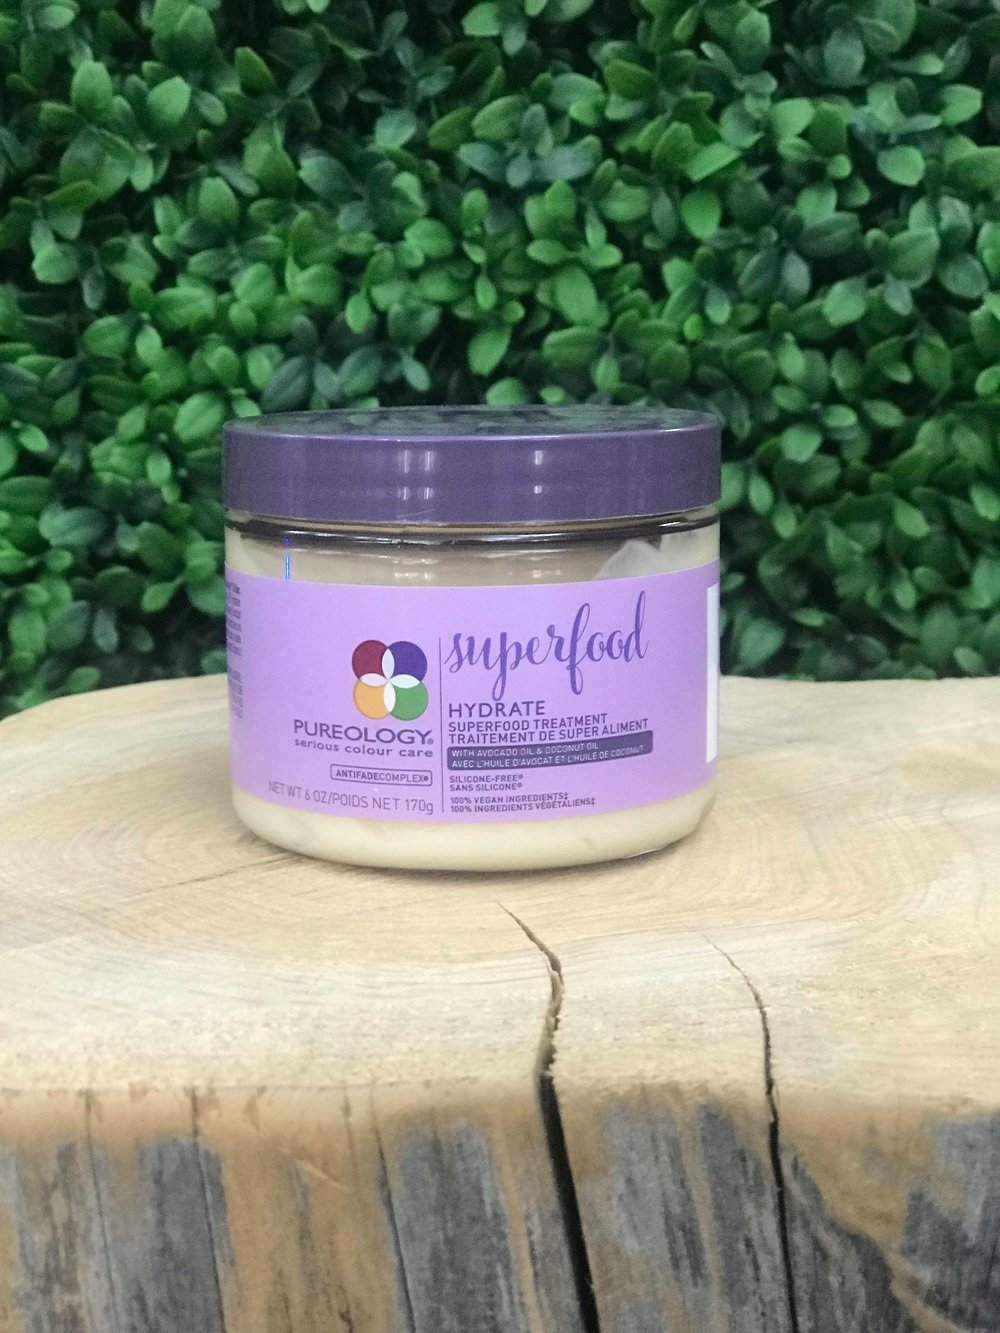 Hydrate Superfood Treatment 170g - $52.00